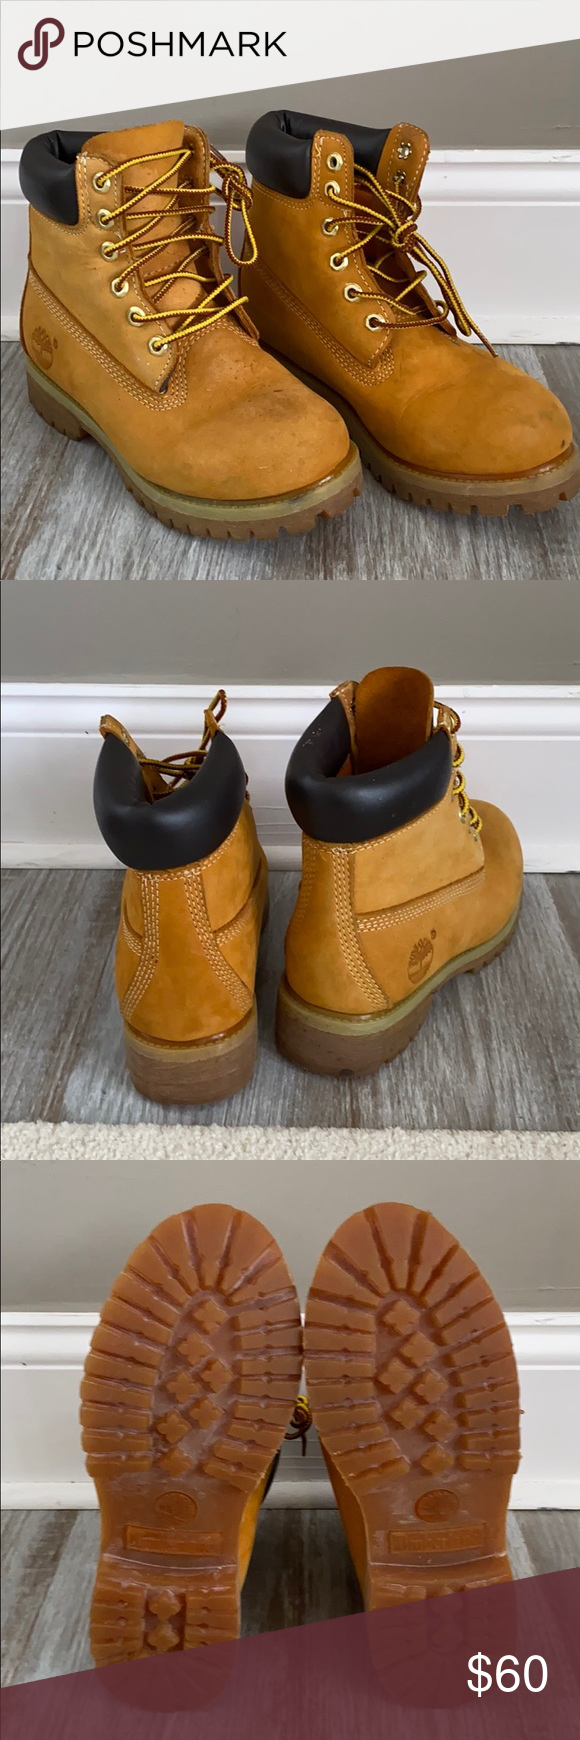 Timberland 6inch waterproof boots in